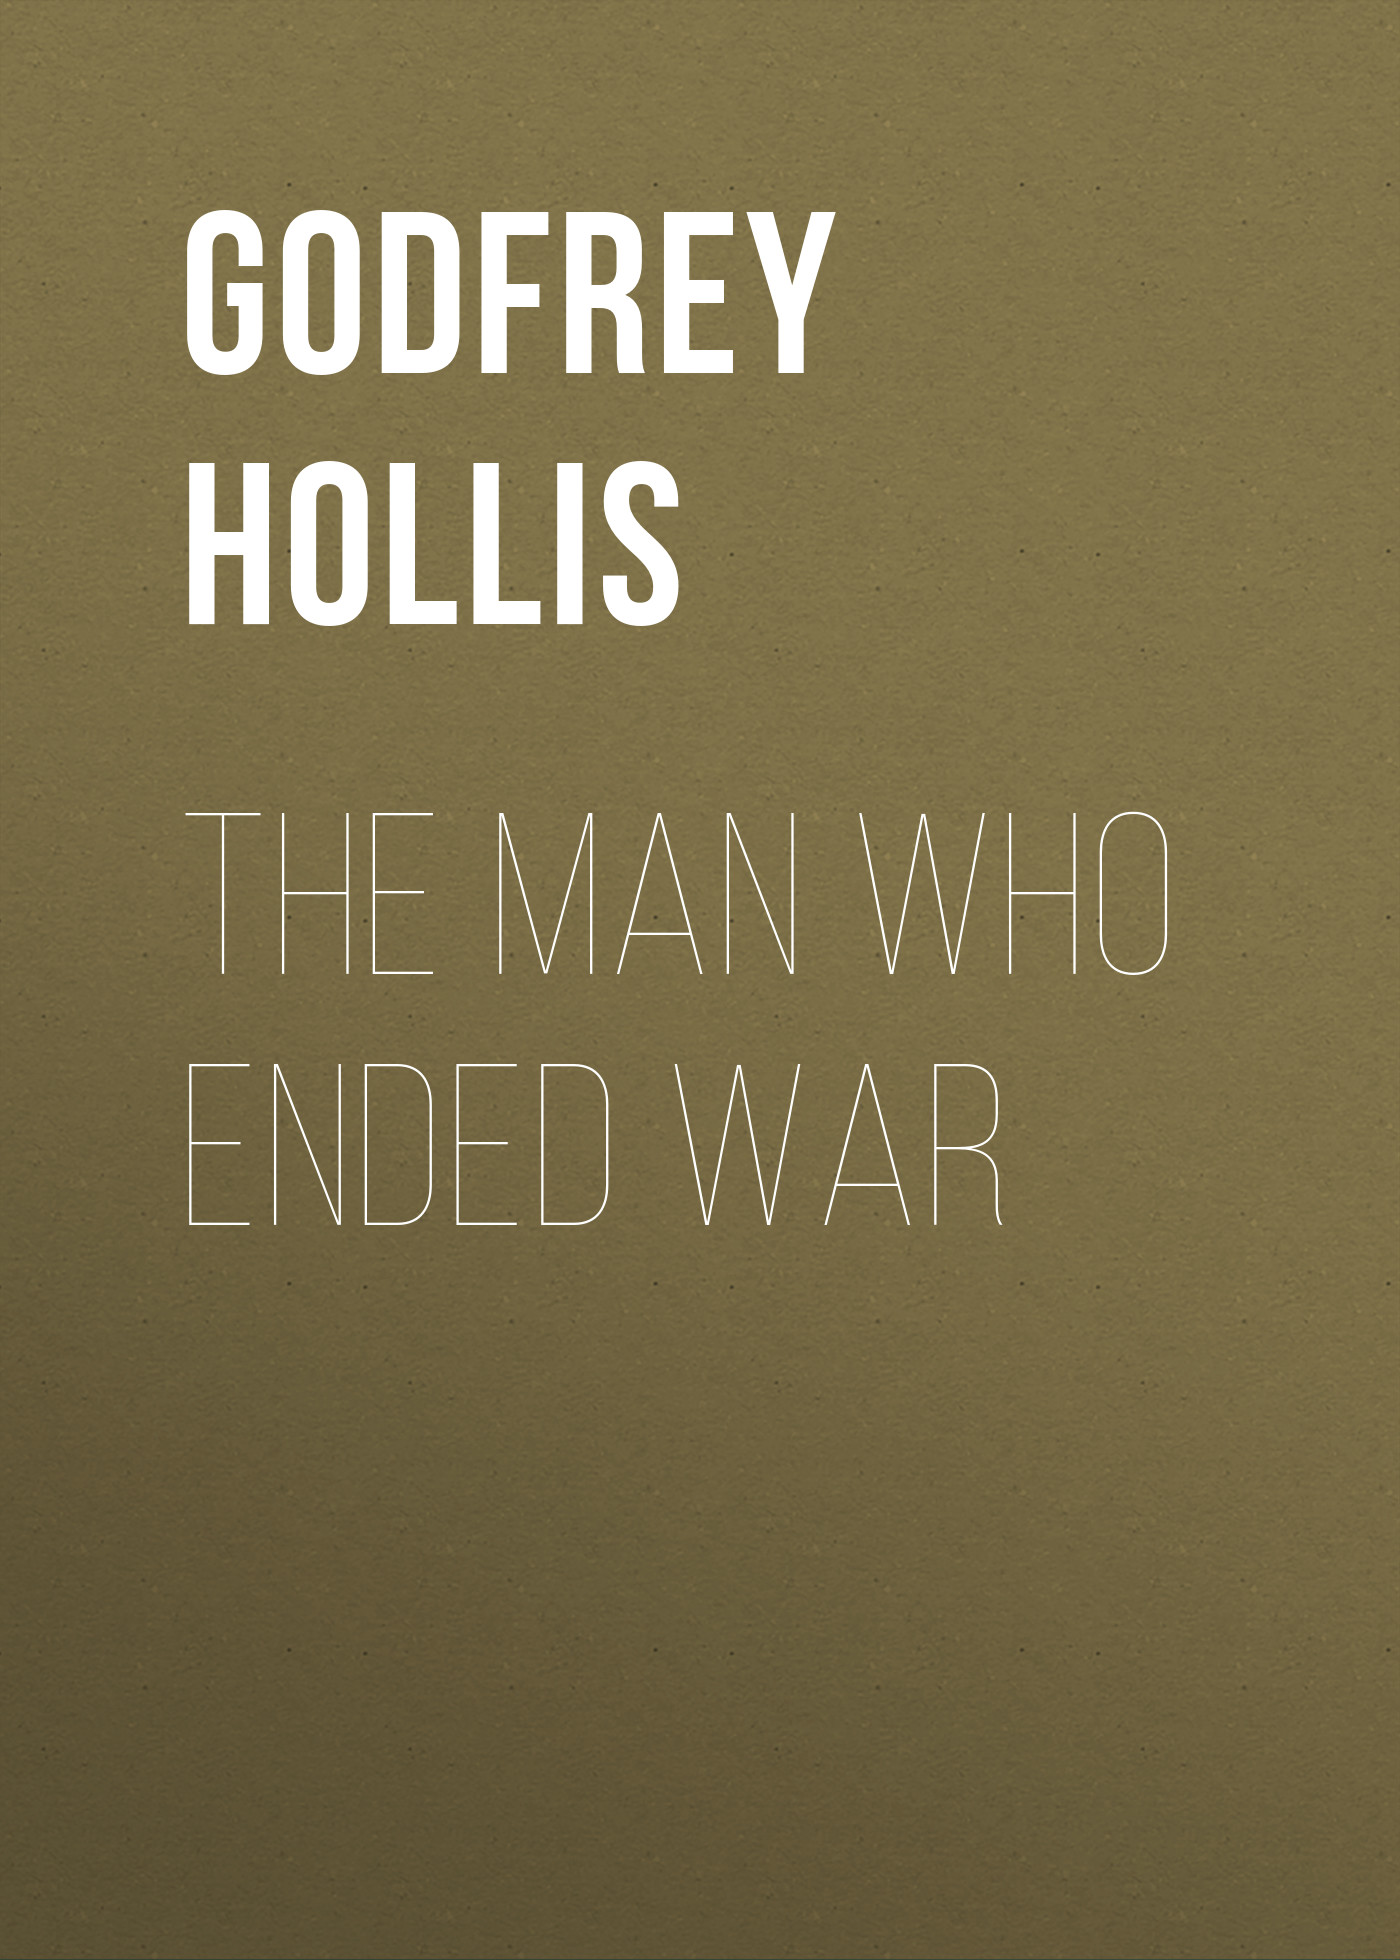 Godfrey Hollis The Man Who Ended War hollis dann hollis dann music course volume 4